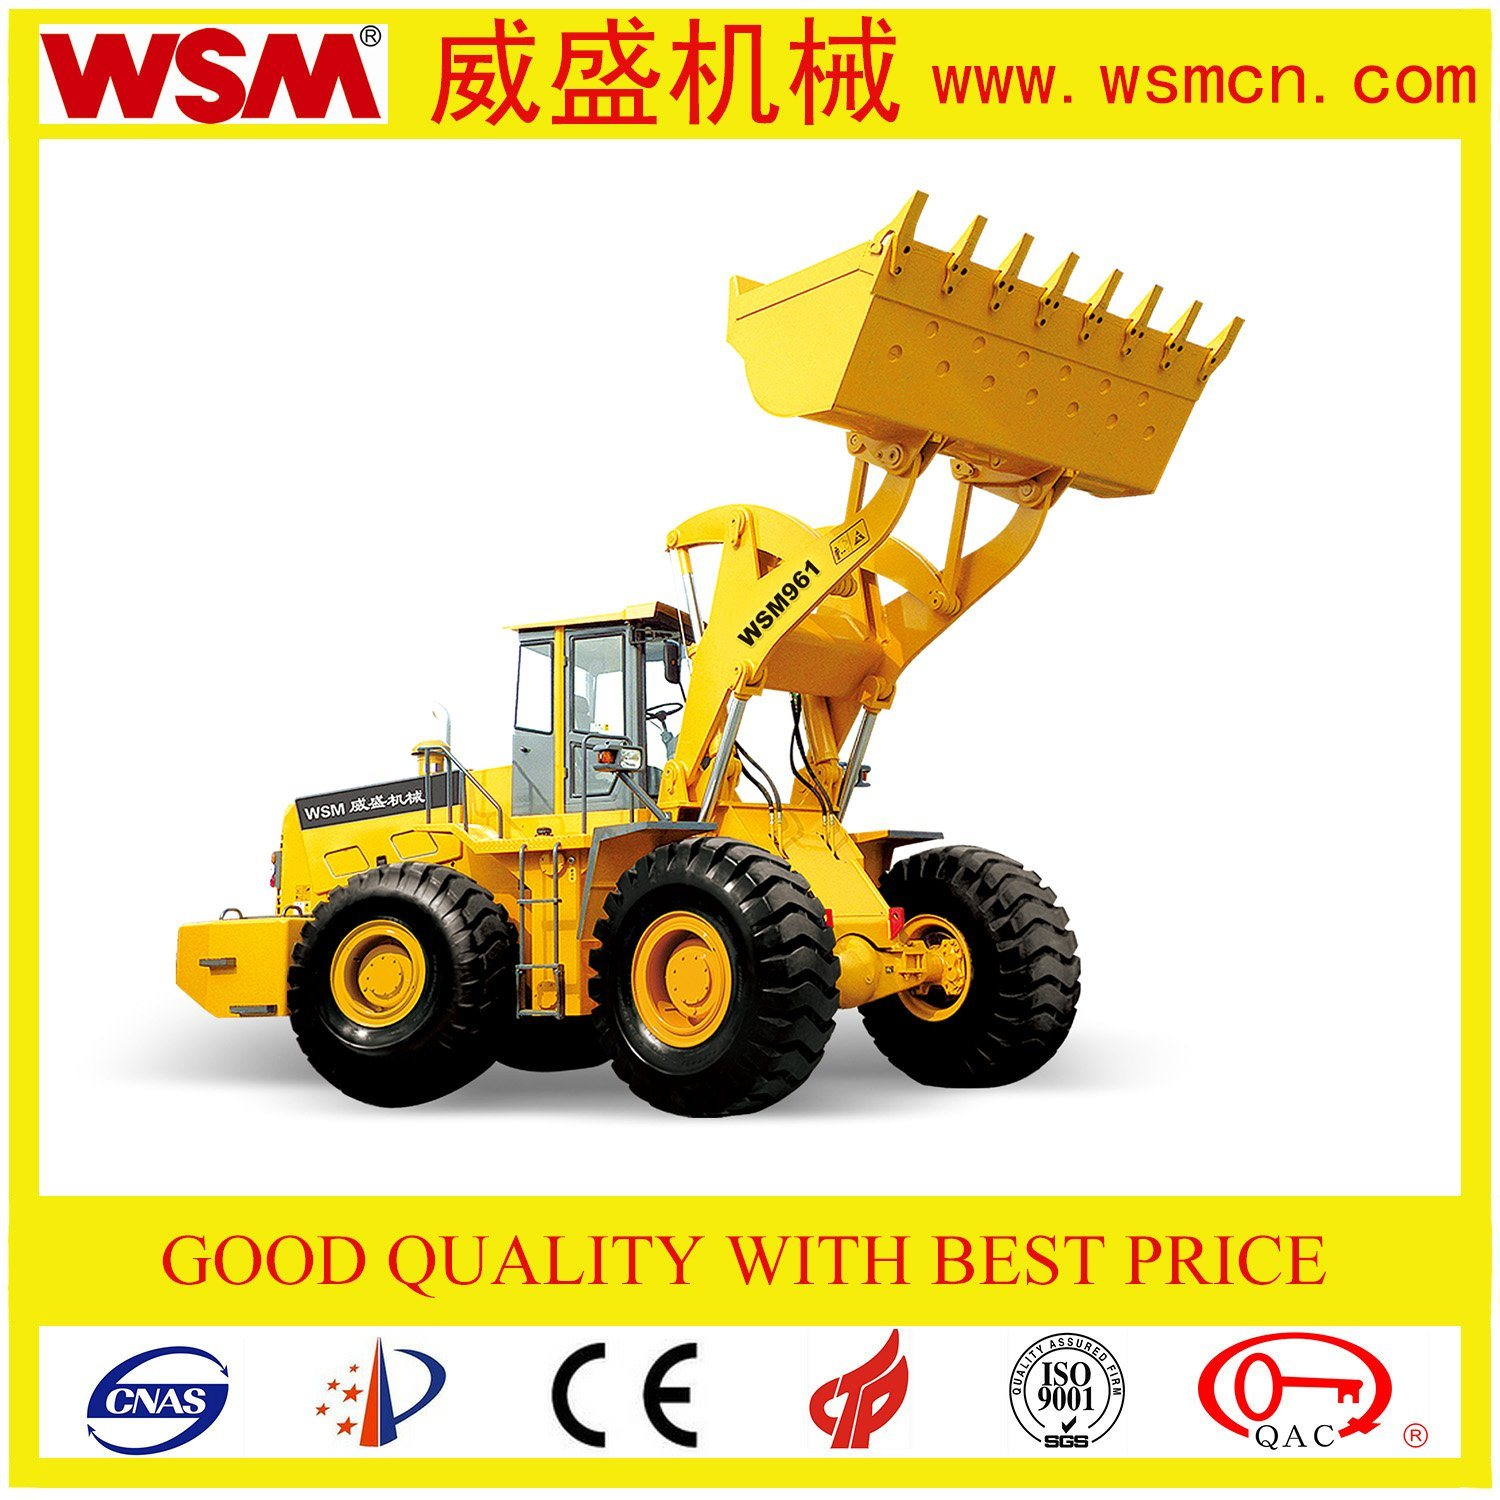 6 Tons Wheel Excavator with Bucket 3.4m3 for Carrying Macadam with Ce Certificate